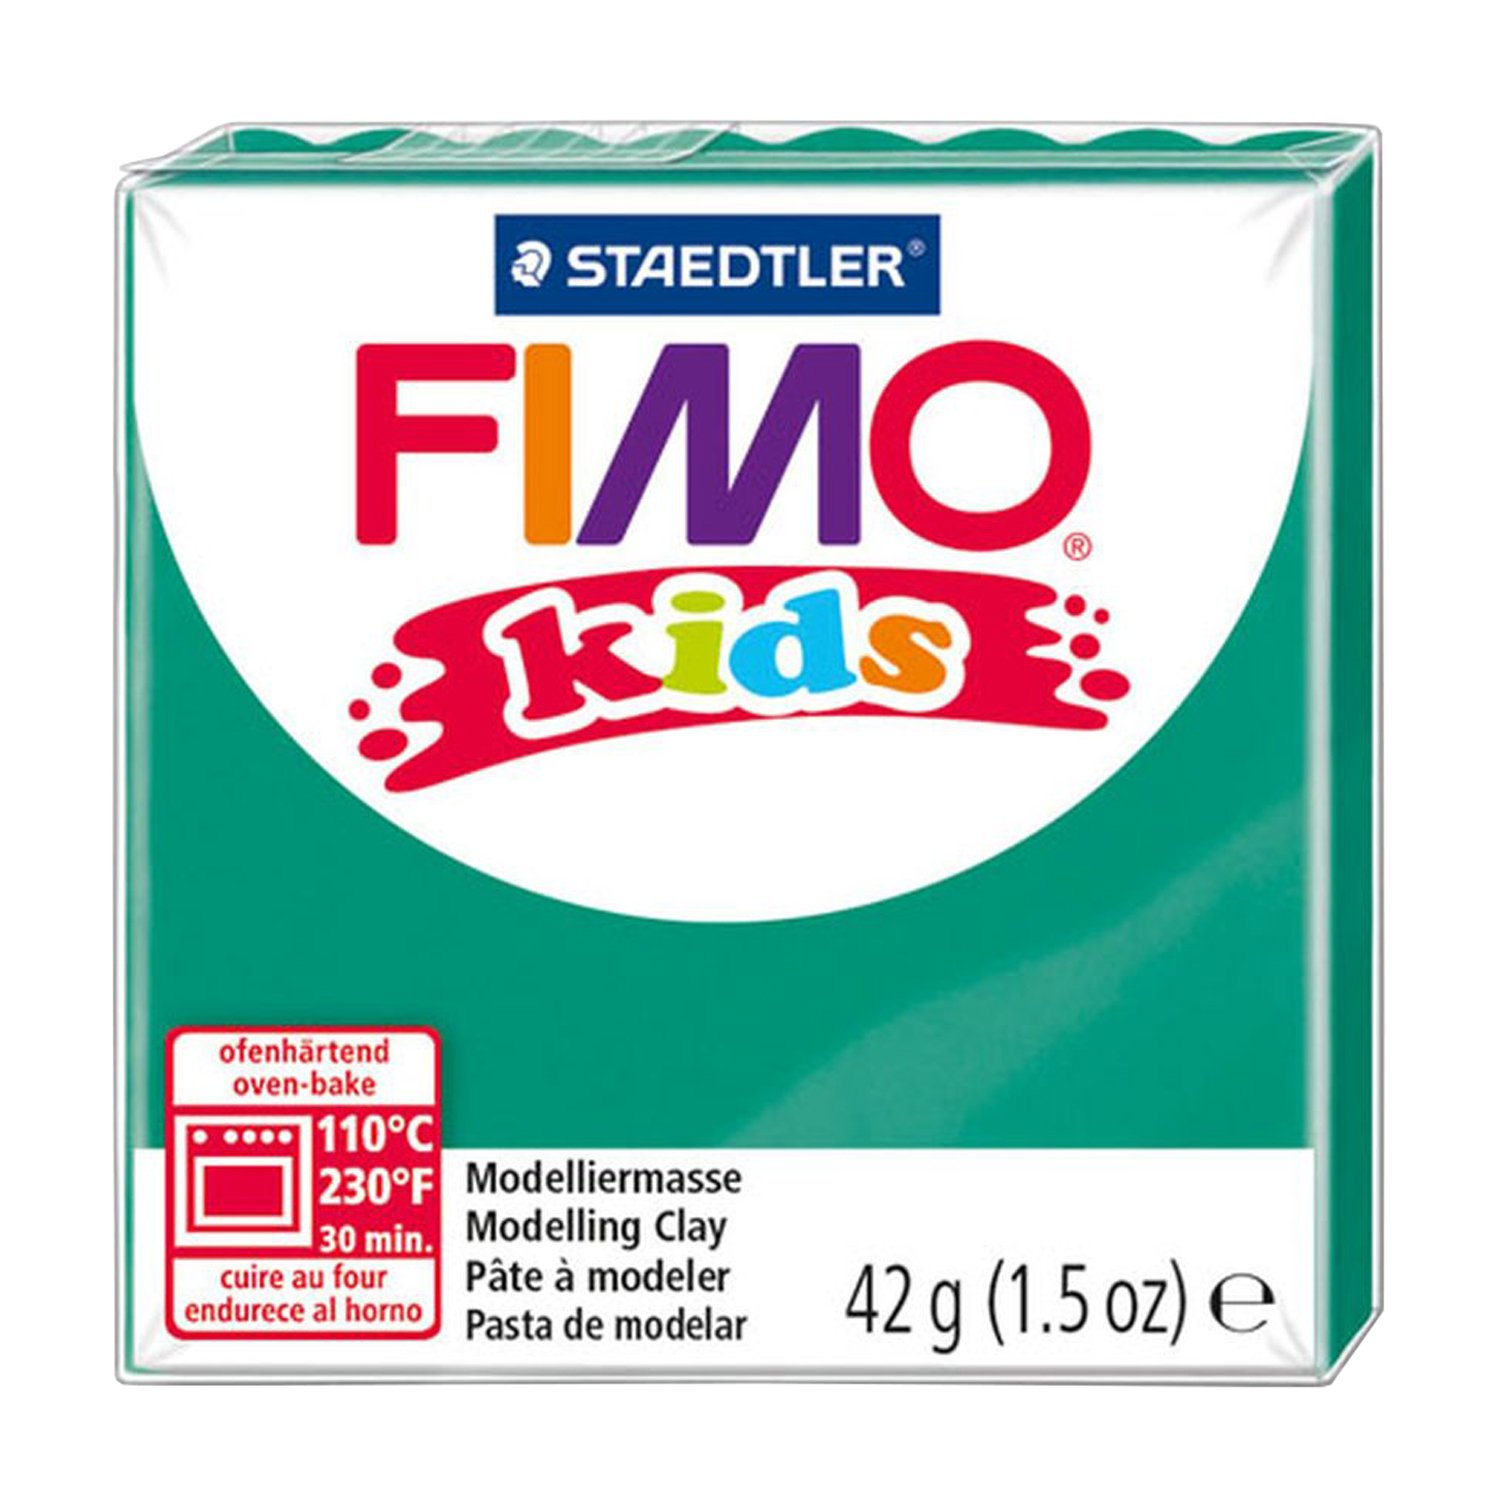 Pack of 6 Assorted Fimo Kids Pastel Set